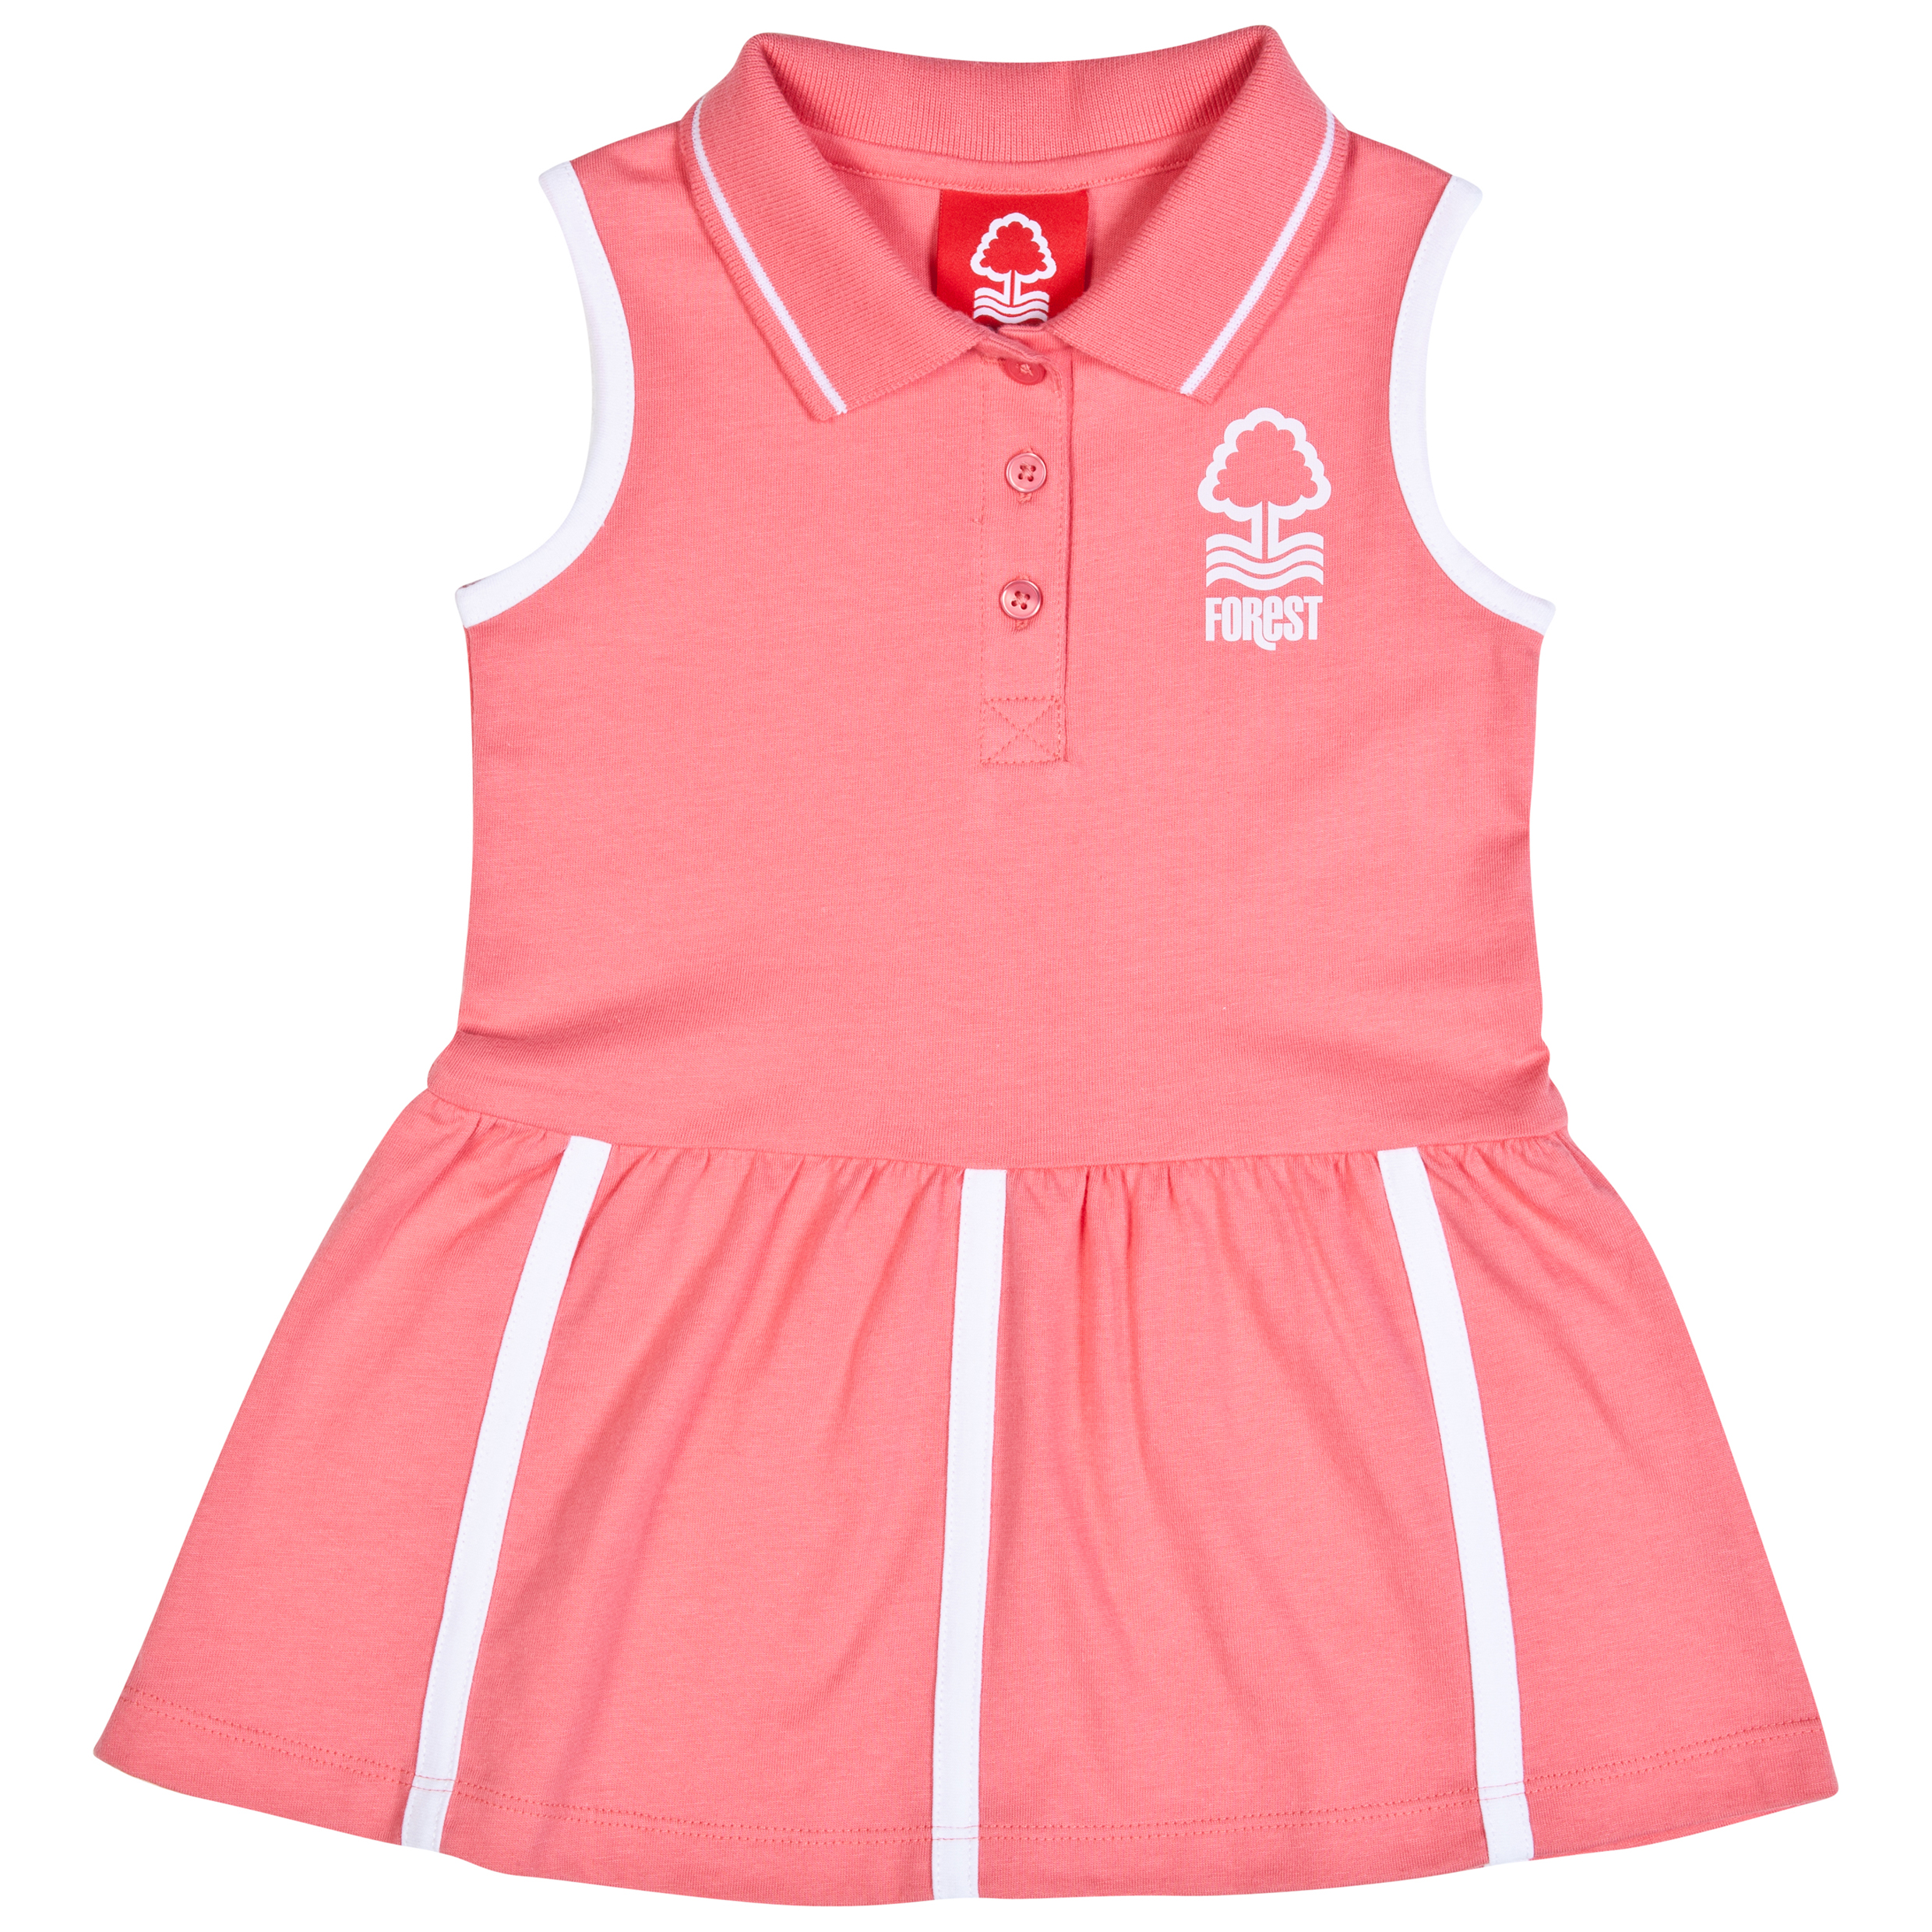 Nottingham Forest Coral Tennis Dress-Baby Pink